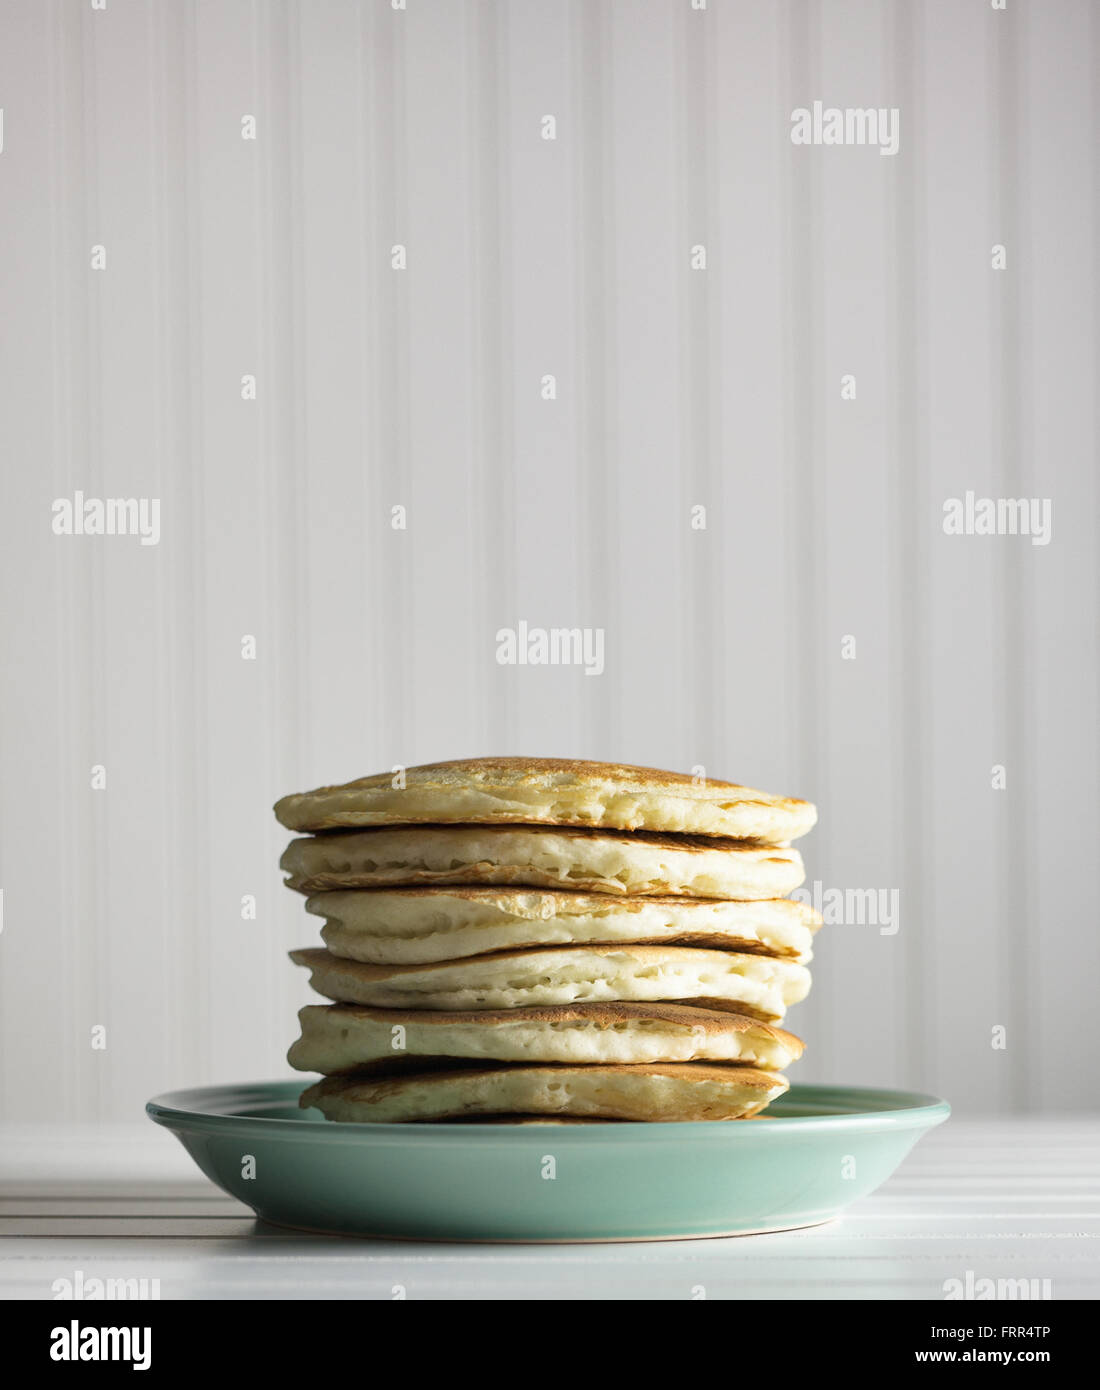 Tall stack of pancakes on a blue plate against a white background. - Stock Image